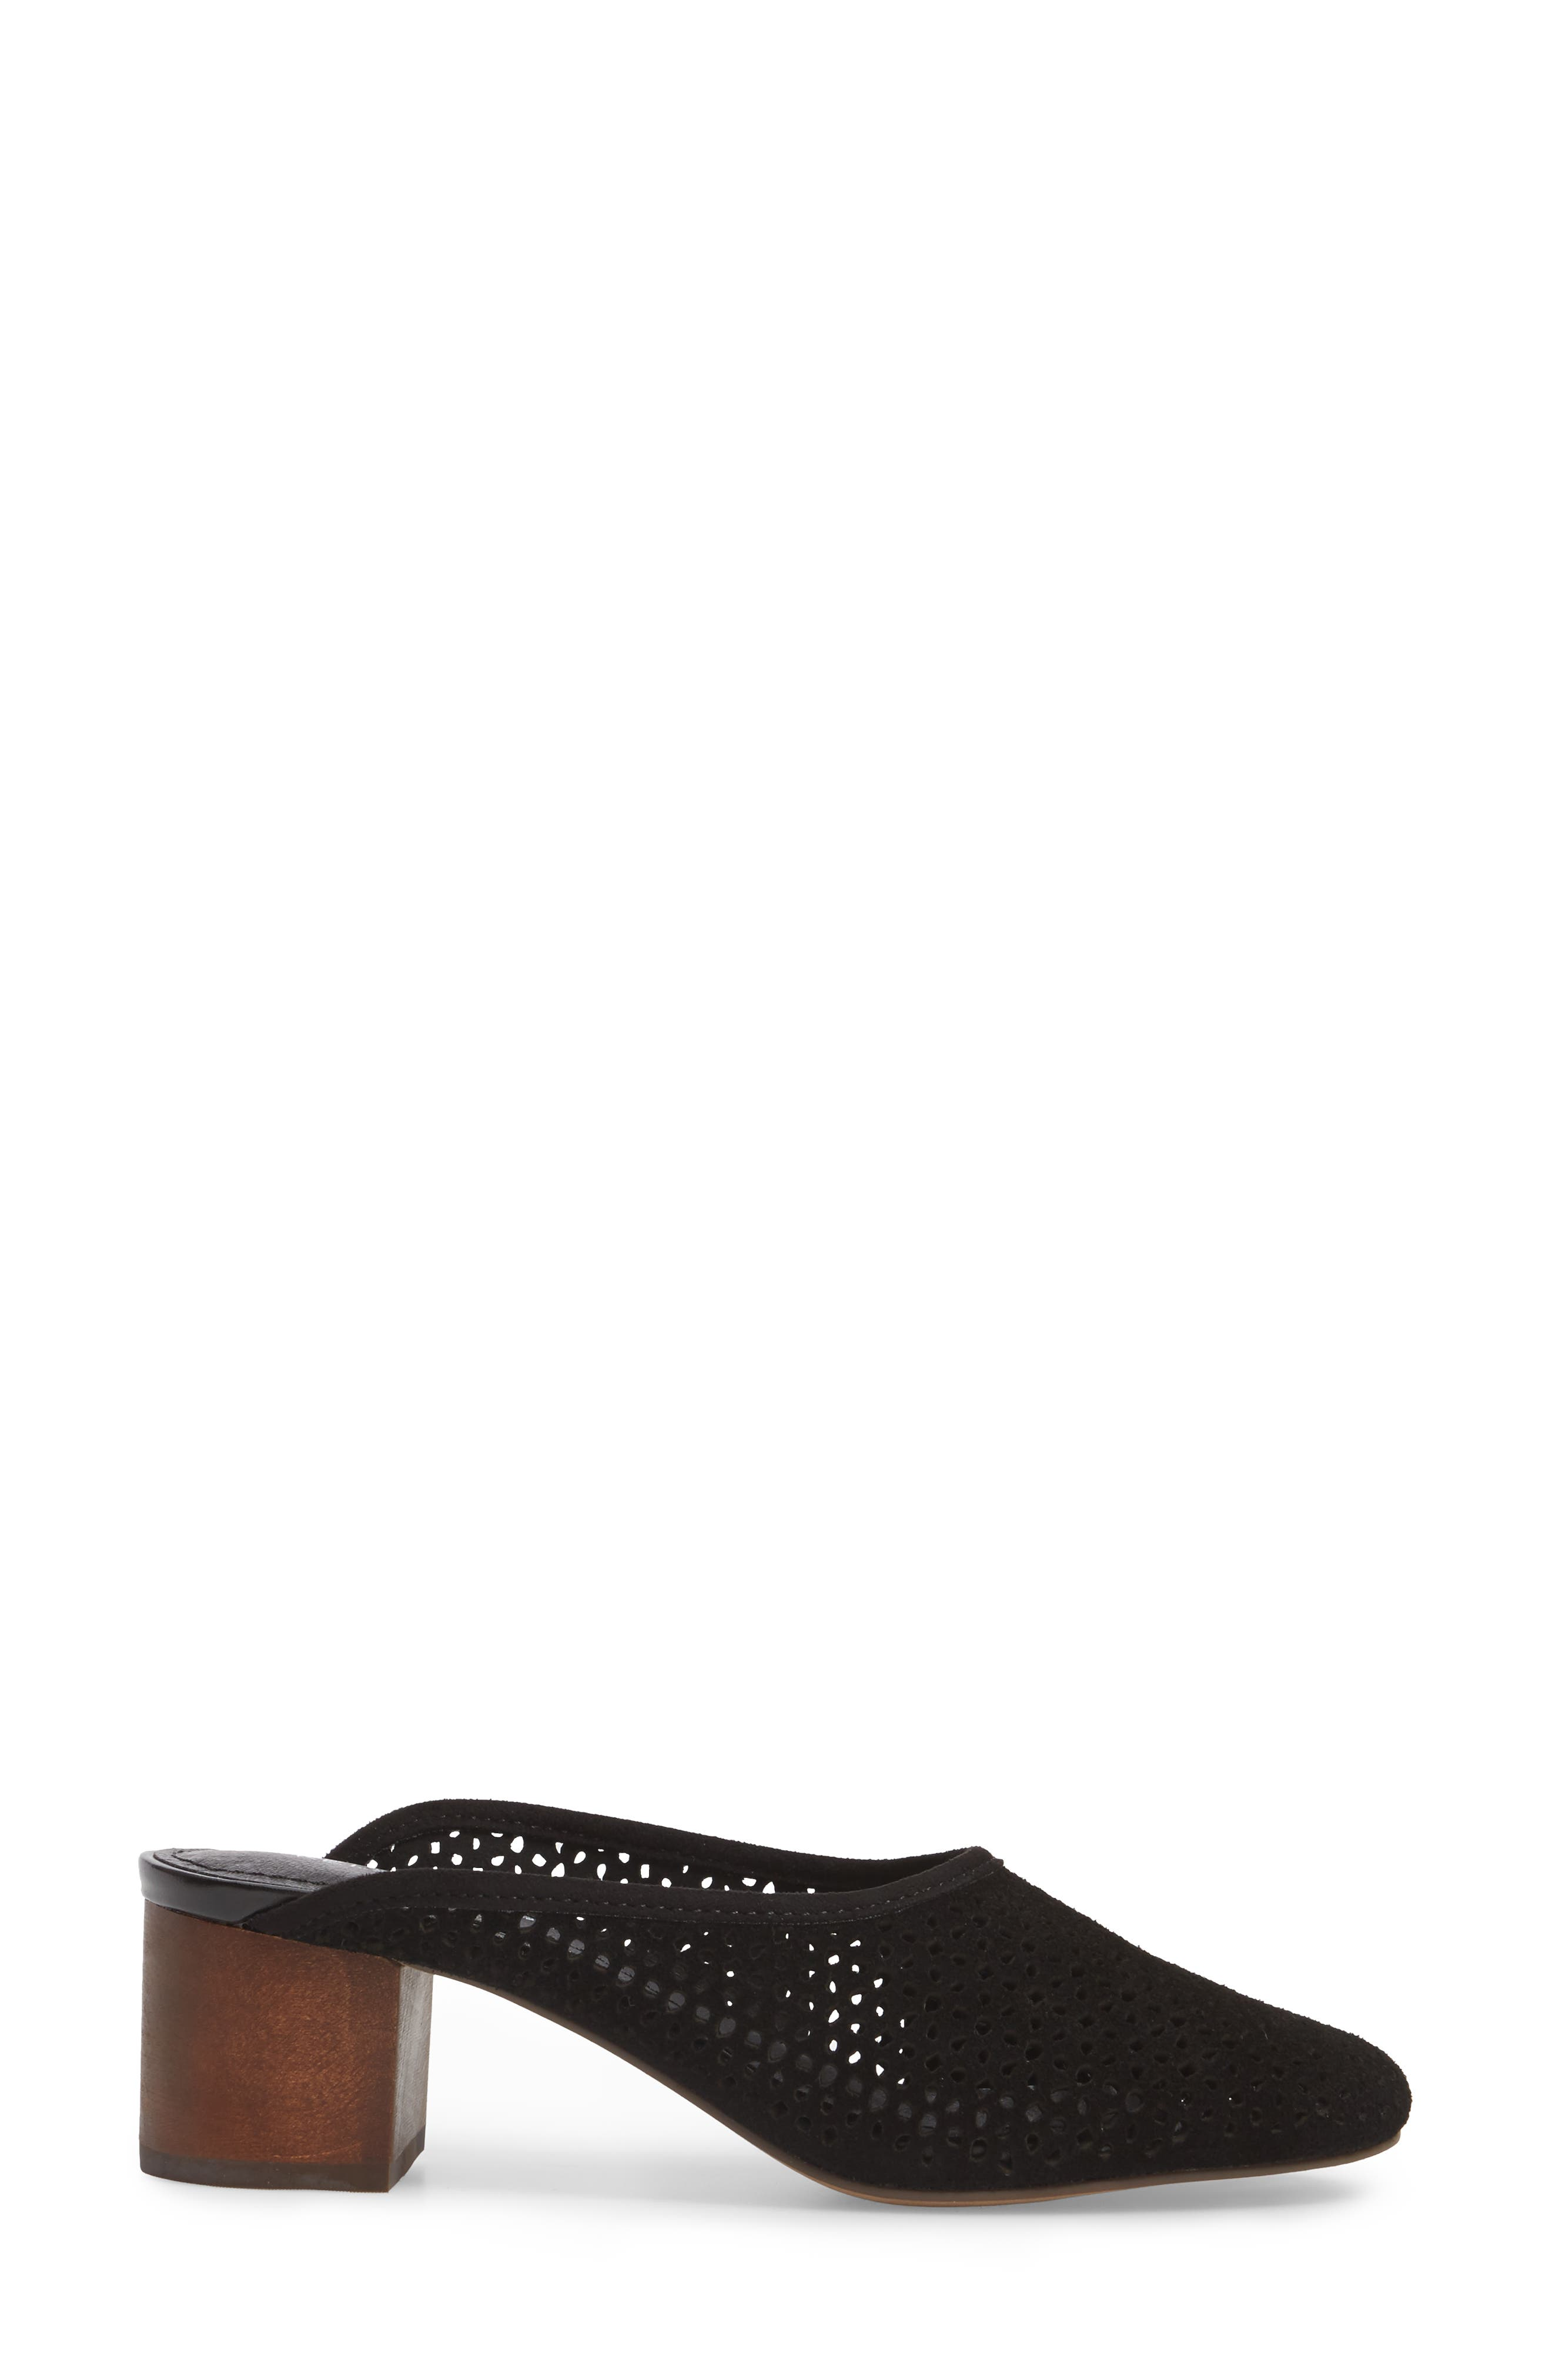 Lincoln Perforated Mule,                             Alternate thumbnail 3, color,                             001